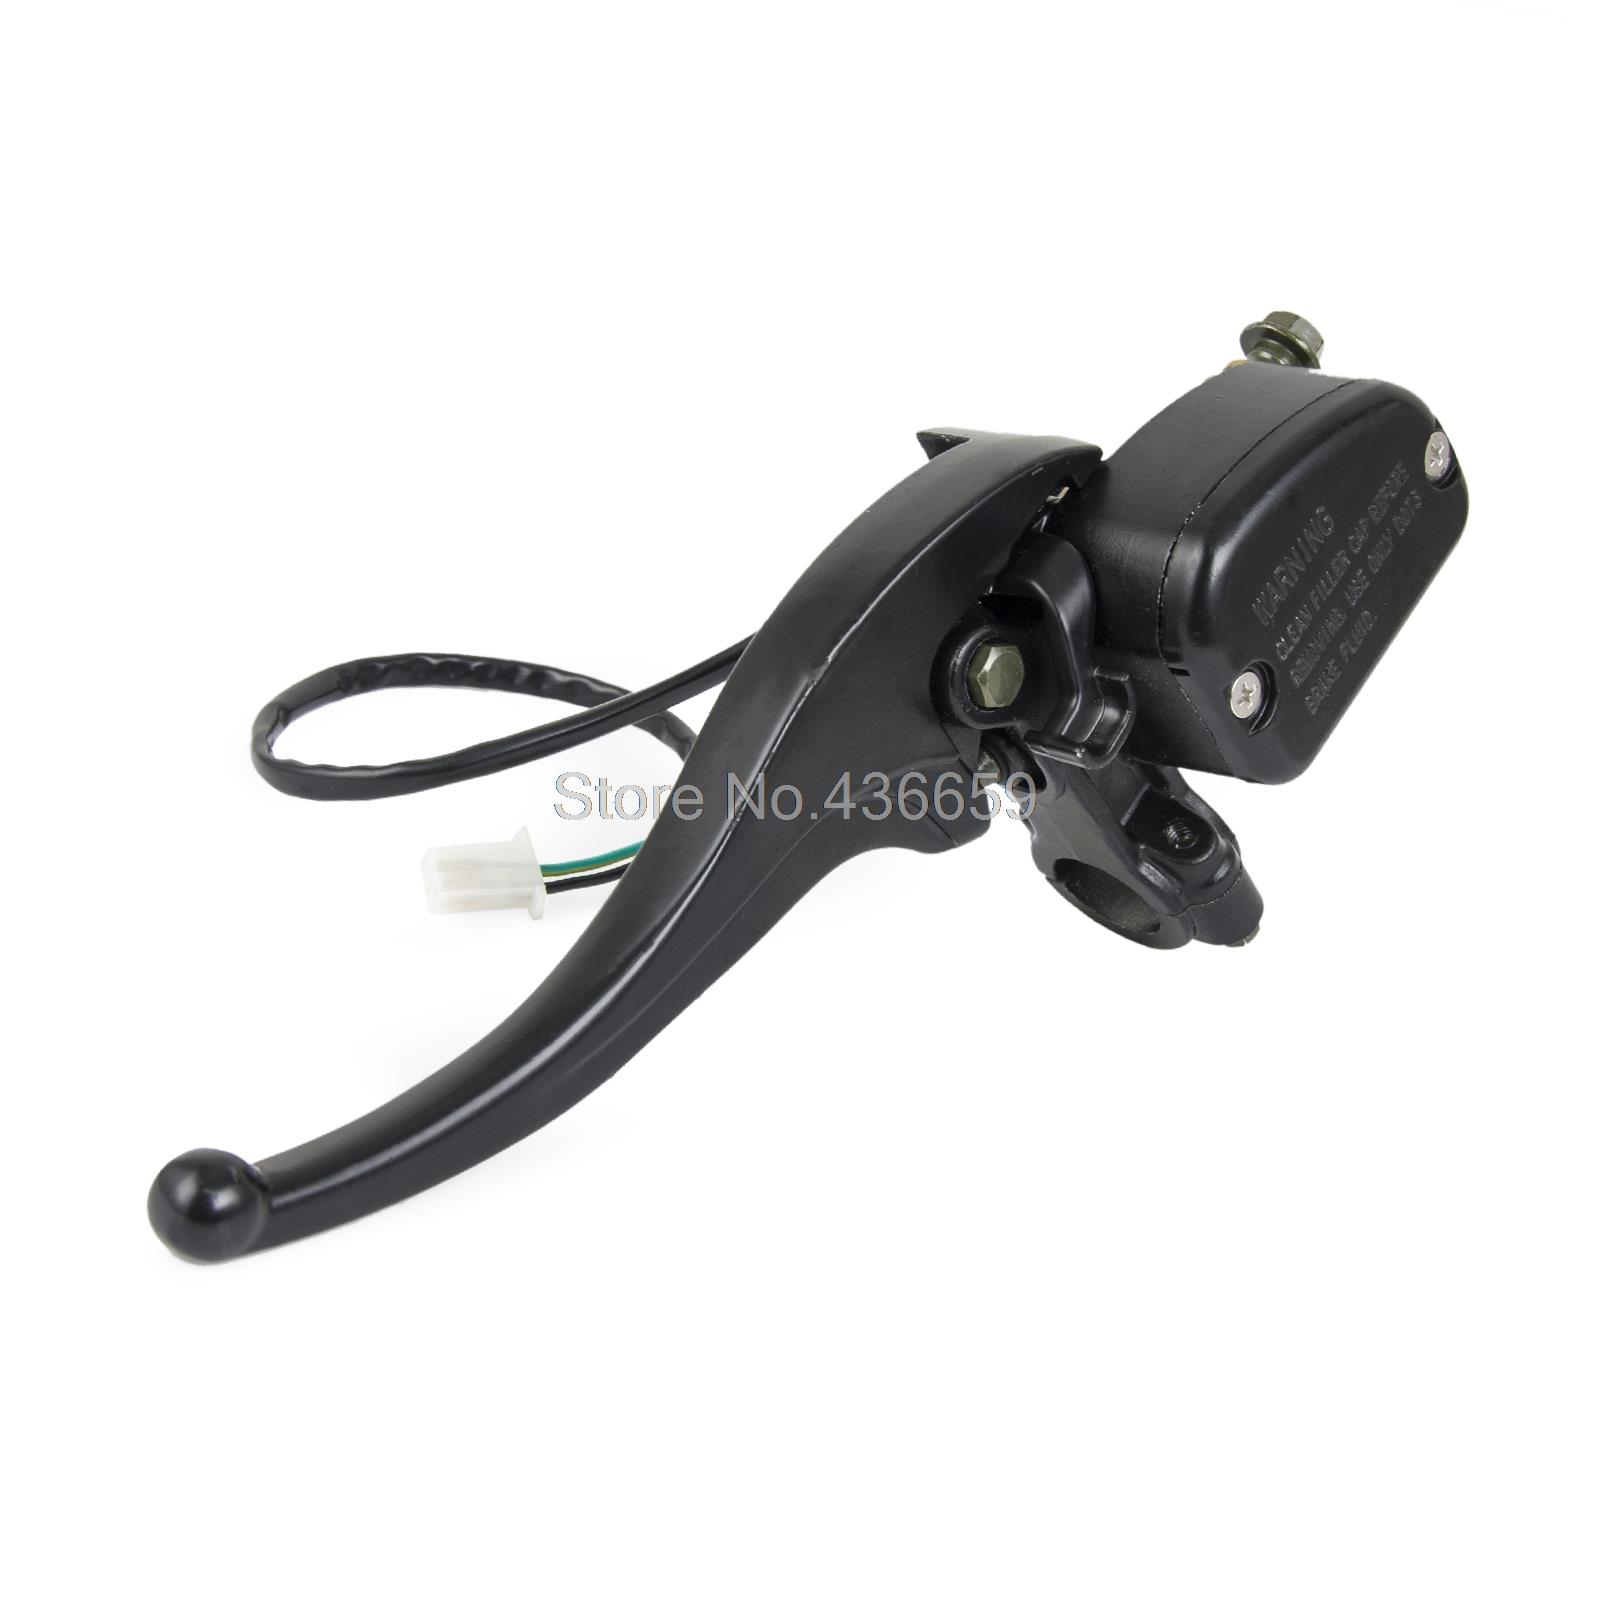 Front Brake Master Cylinder For Polaris Scrambler 500 850 Sportsman 700 800 850 торговые автоматы в украине